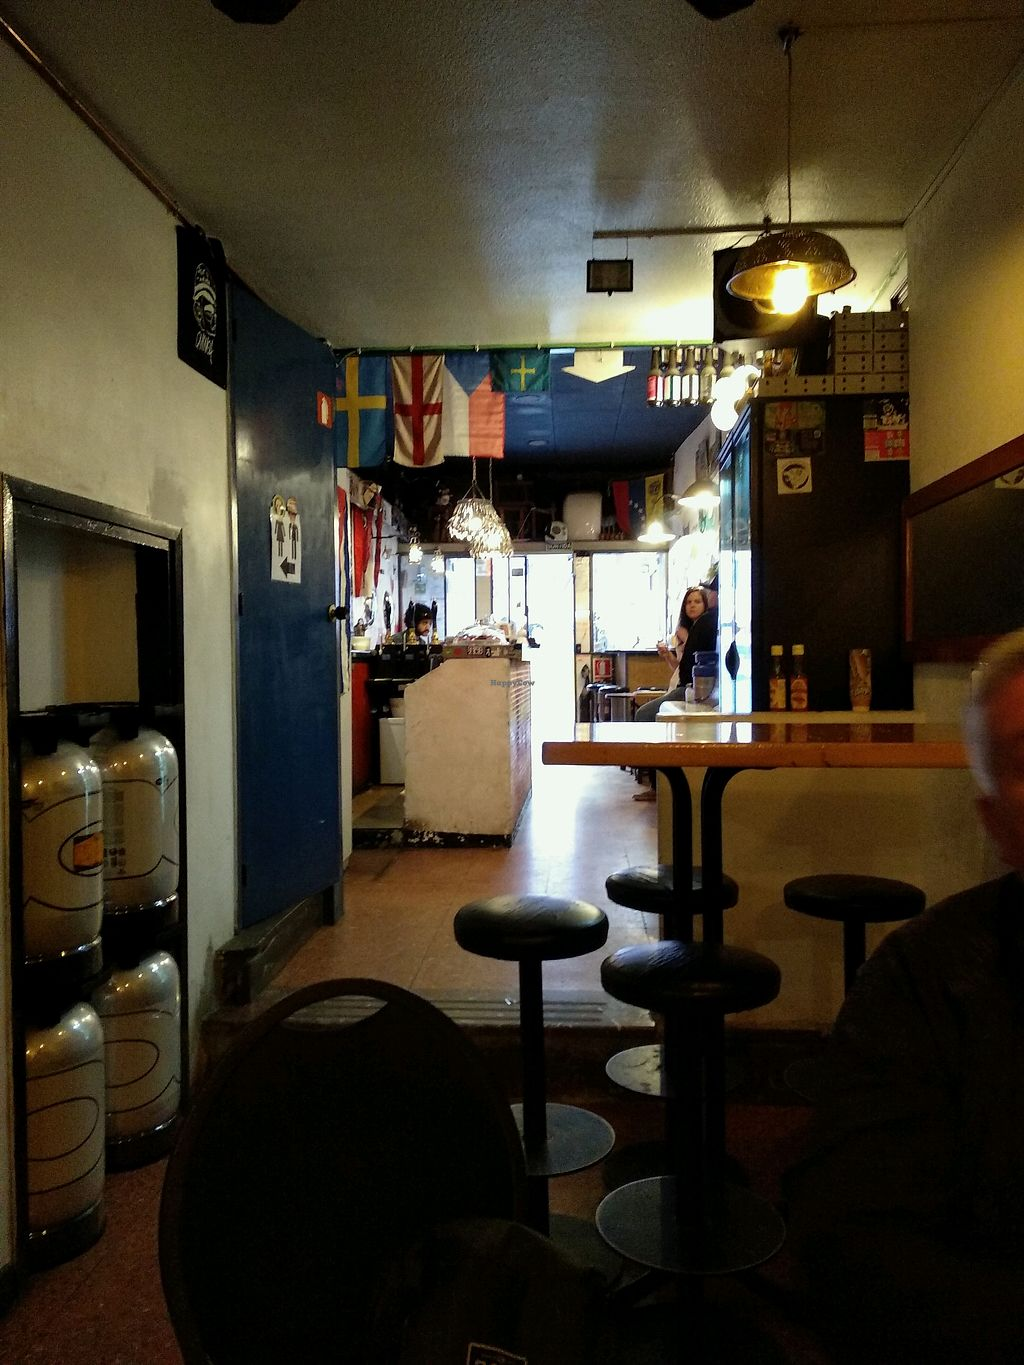 """Photo of CatBar  by <a href=""""/members/profile/Miggi"""">Miggi</a> <br/>view from back of bar <br/> April 20, 2018  - <a href='/contact/abuse/image/21348/388655'>Report</a>"""